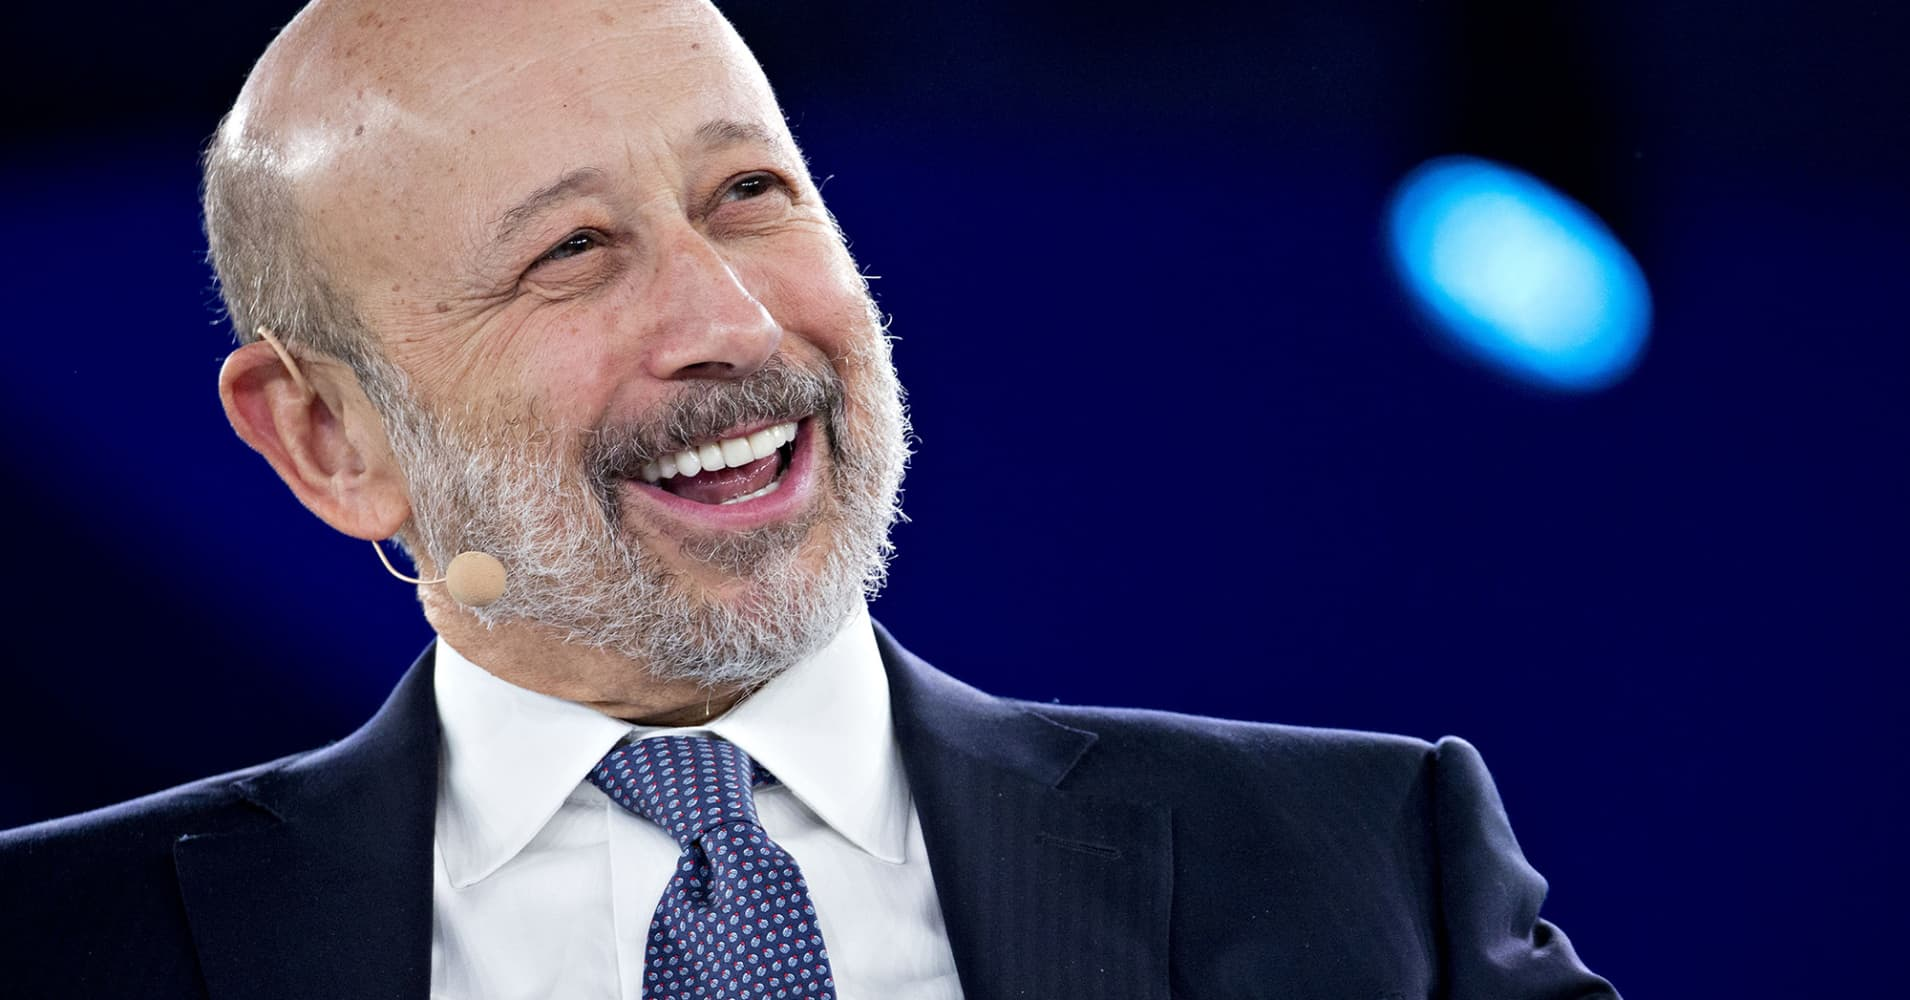 Goldman Sachs CEO says the US and China are not in a 'suicide pact' on trade